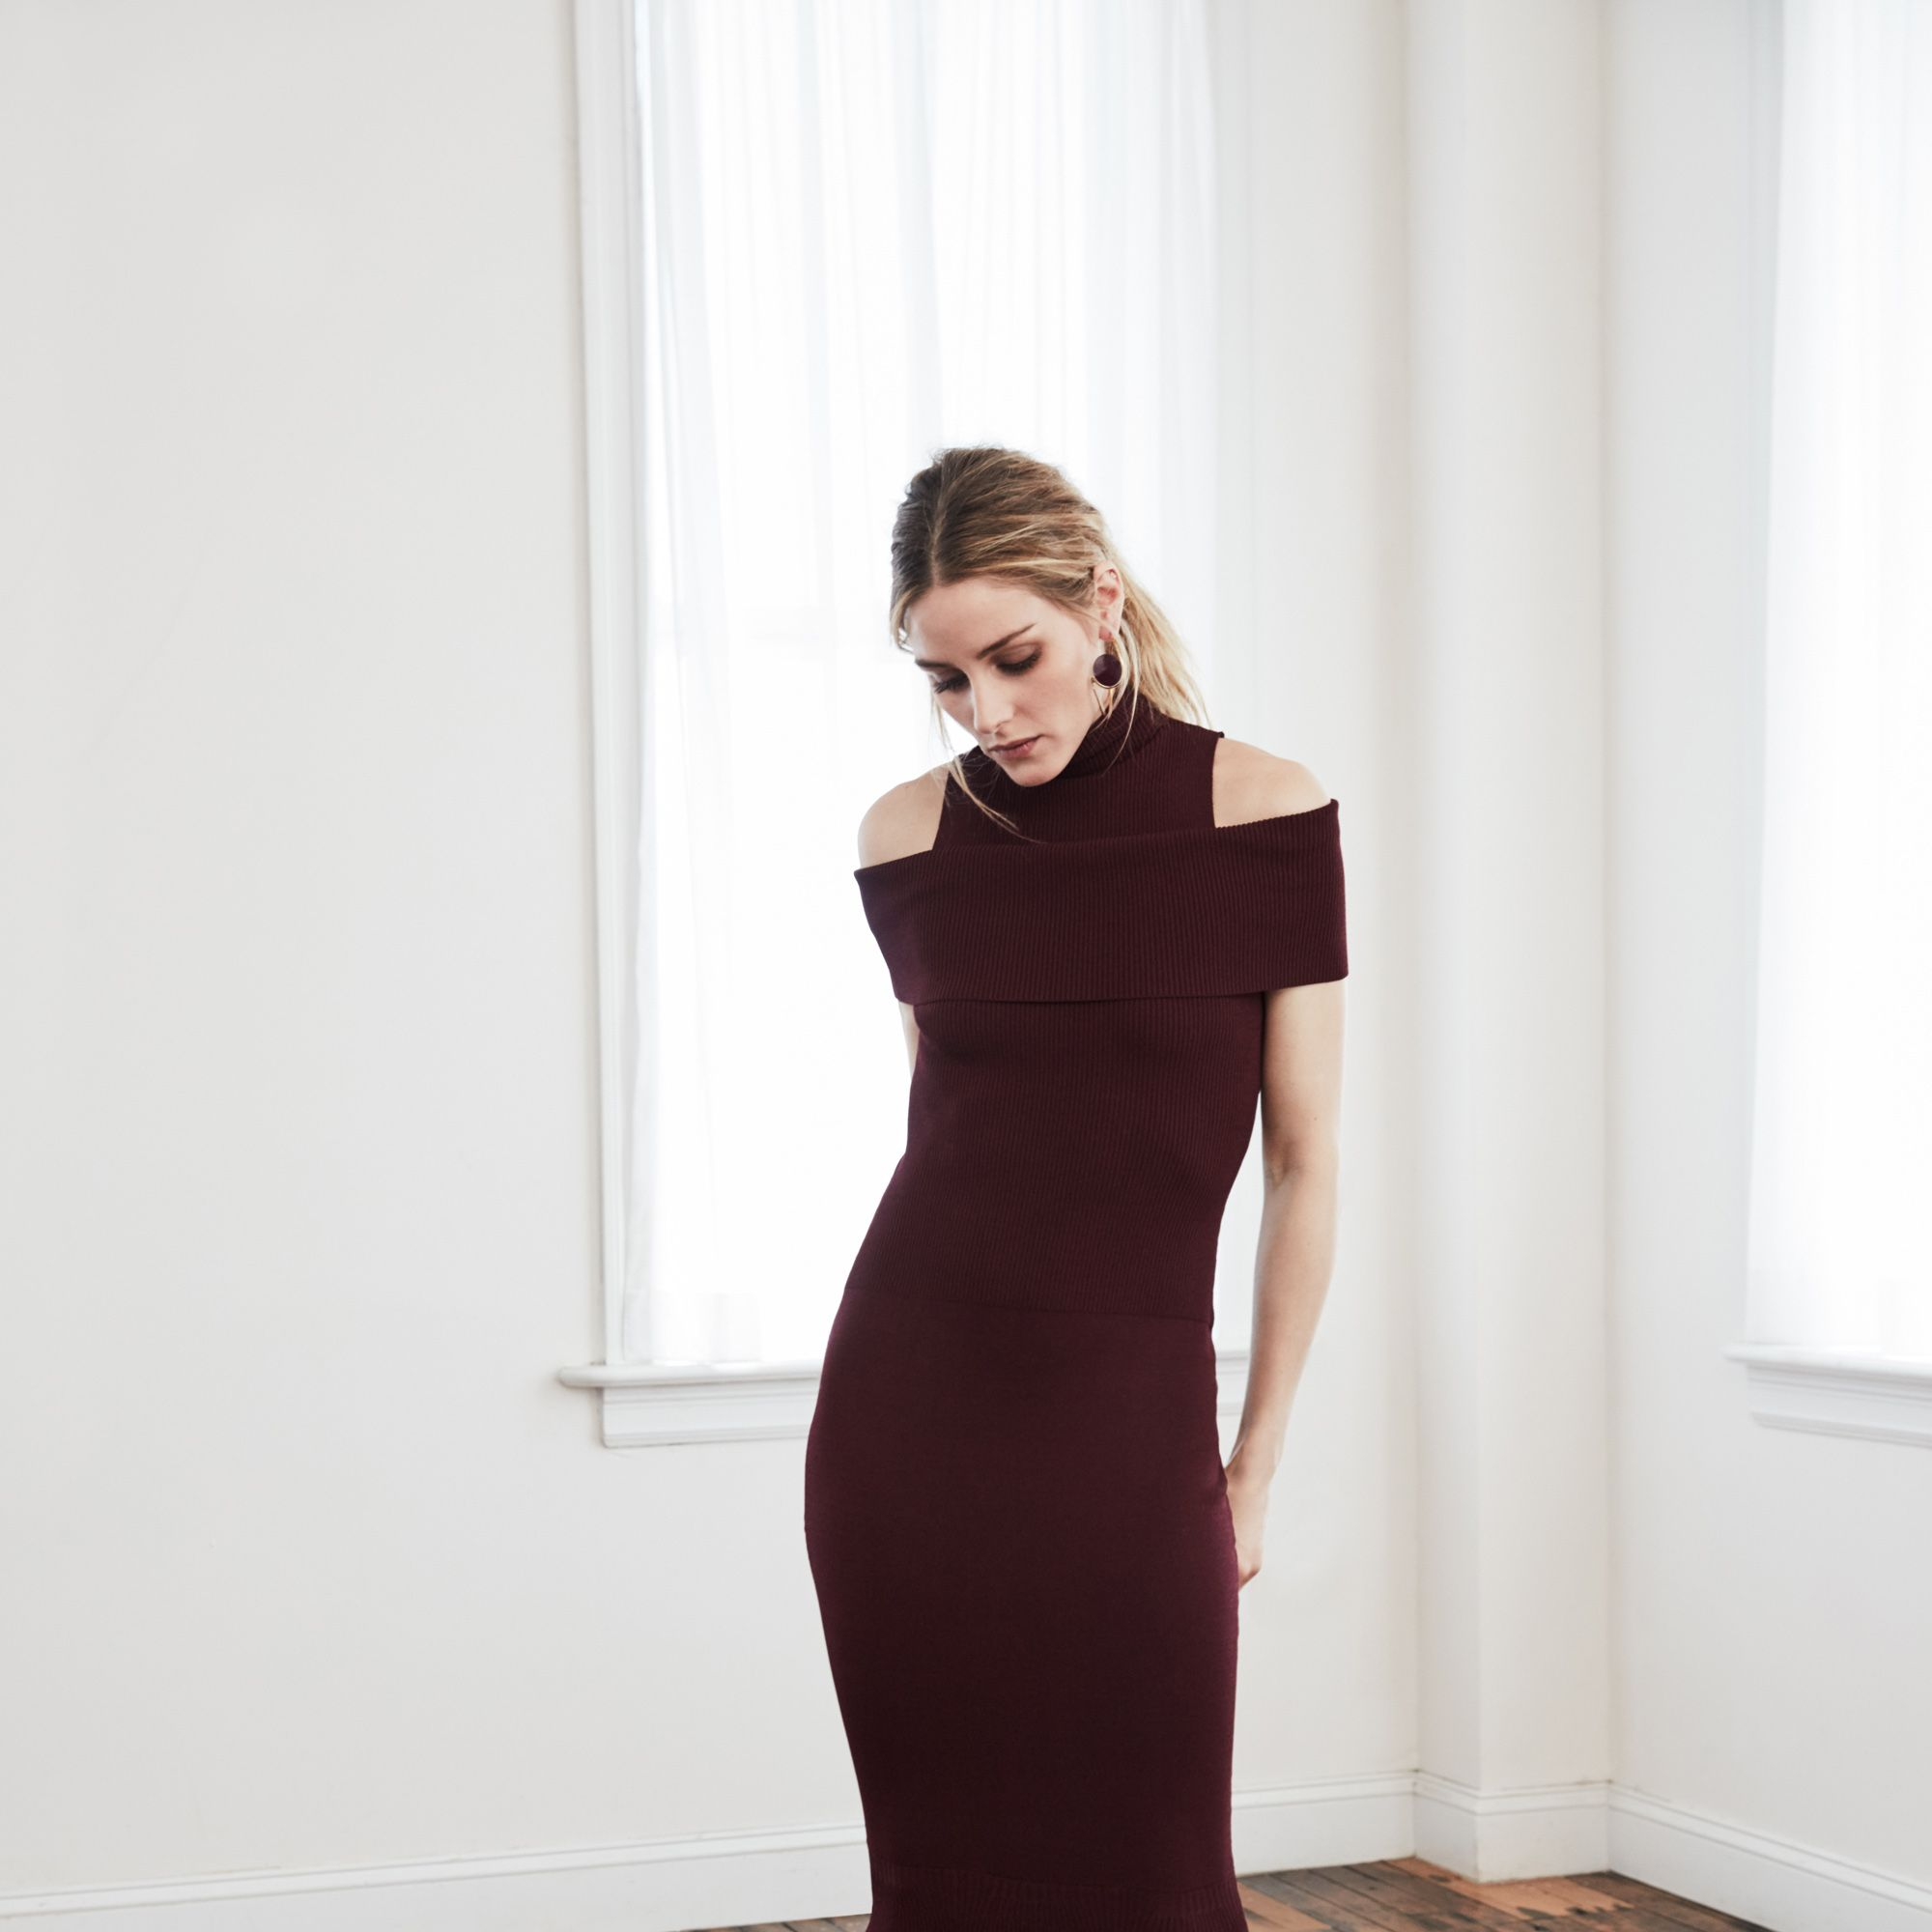 """<p><strong data-redactor-tag=""""strong"""" data-verified=""""redactor"""">HB:&nbsp&#x3B;</strong><strong data-redactor-tag=""""strong"""" data-verified=""""redactor"""">What fall trends are you most excited to wear?</strong></p><p><strong data-redactor-tag=""""strong"""" data-verified=""""redactor"""">OP: </strong>I'm excited for rich tones like burgundy. I also love using a neutral color palette when incorporating different textures such as suede.&nbsp&#x3B;</p>"""